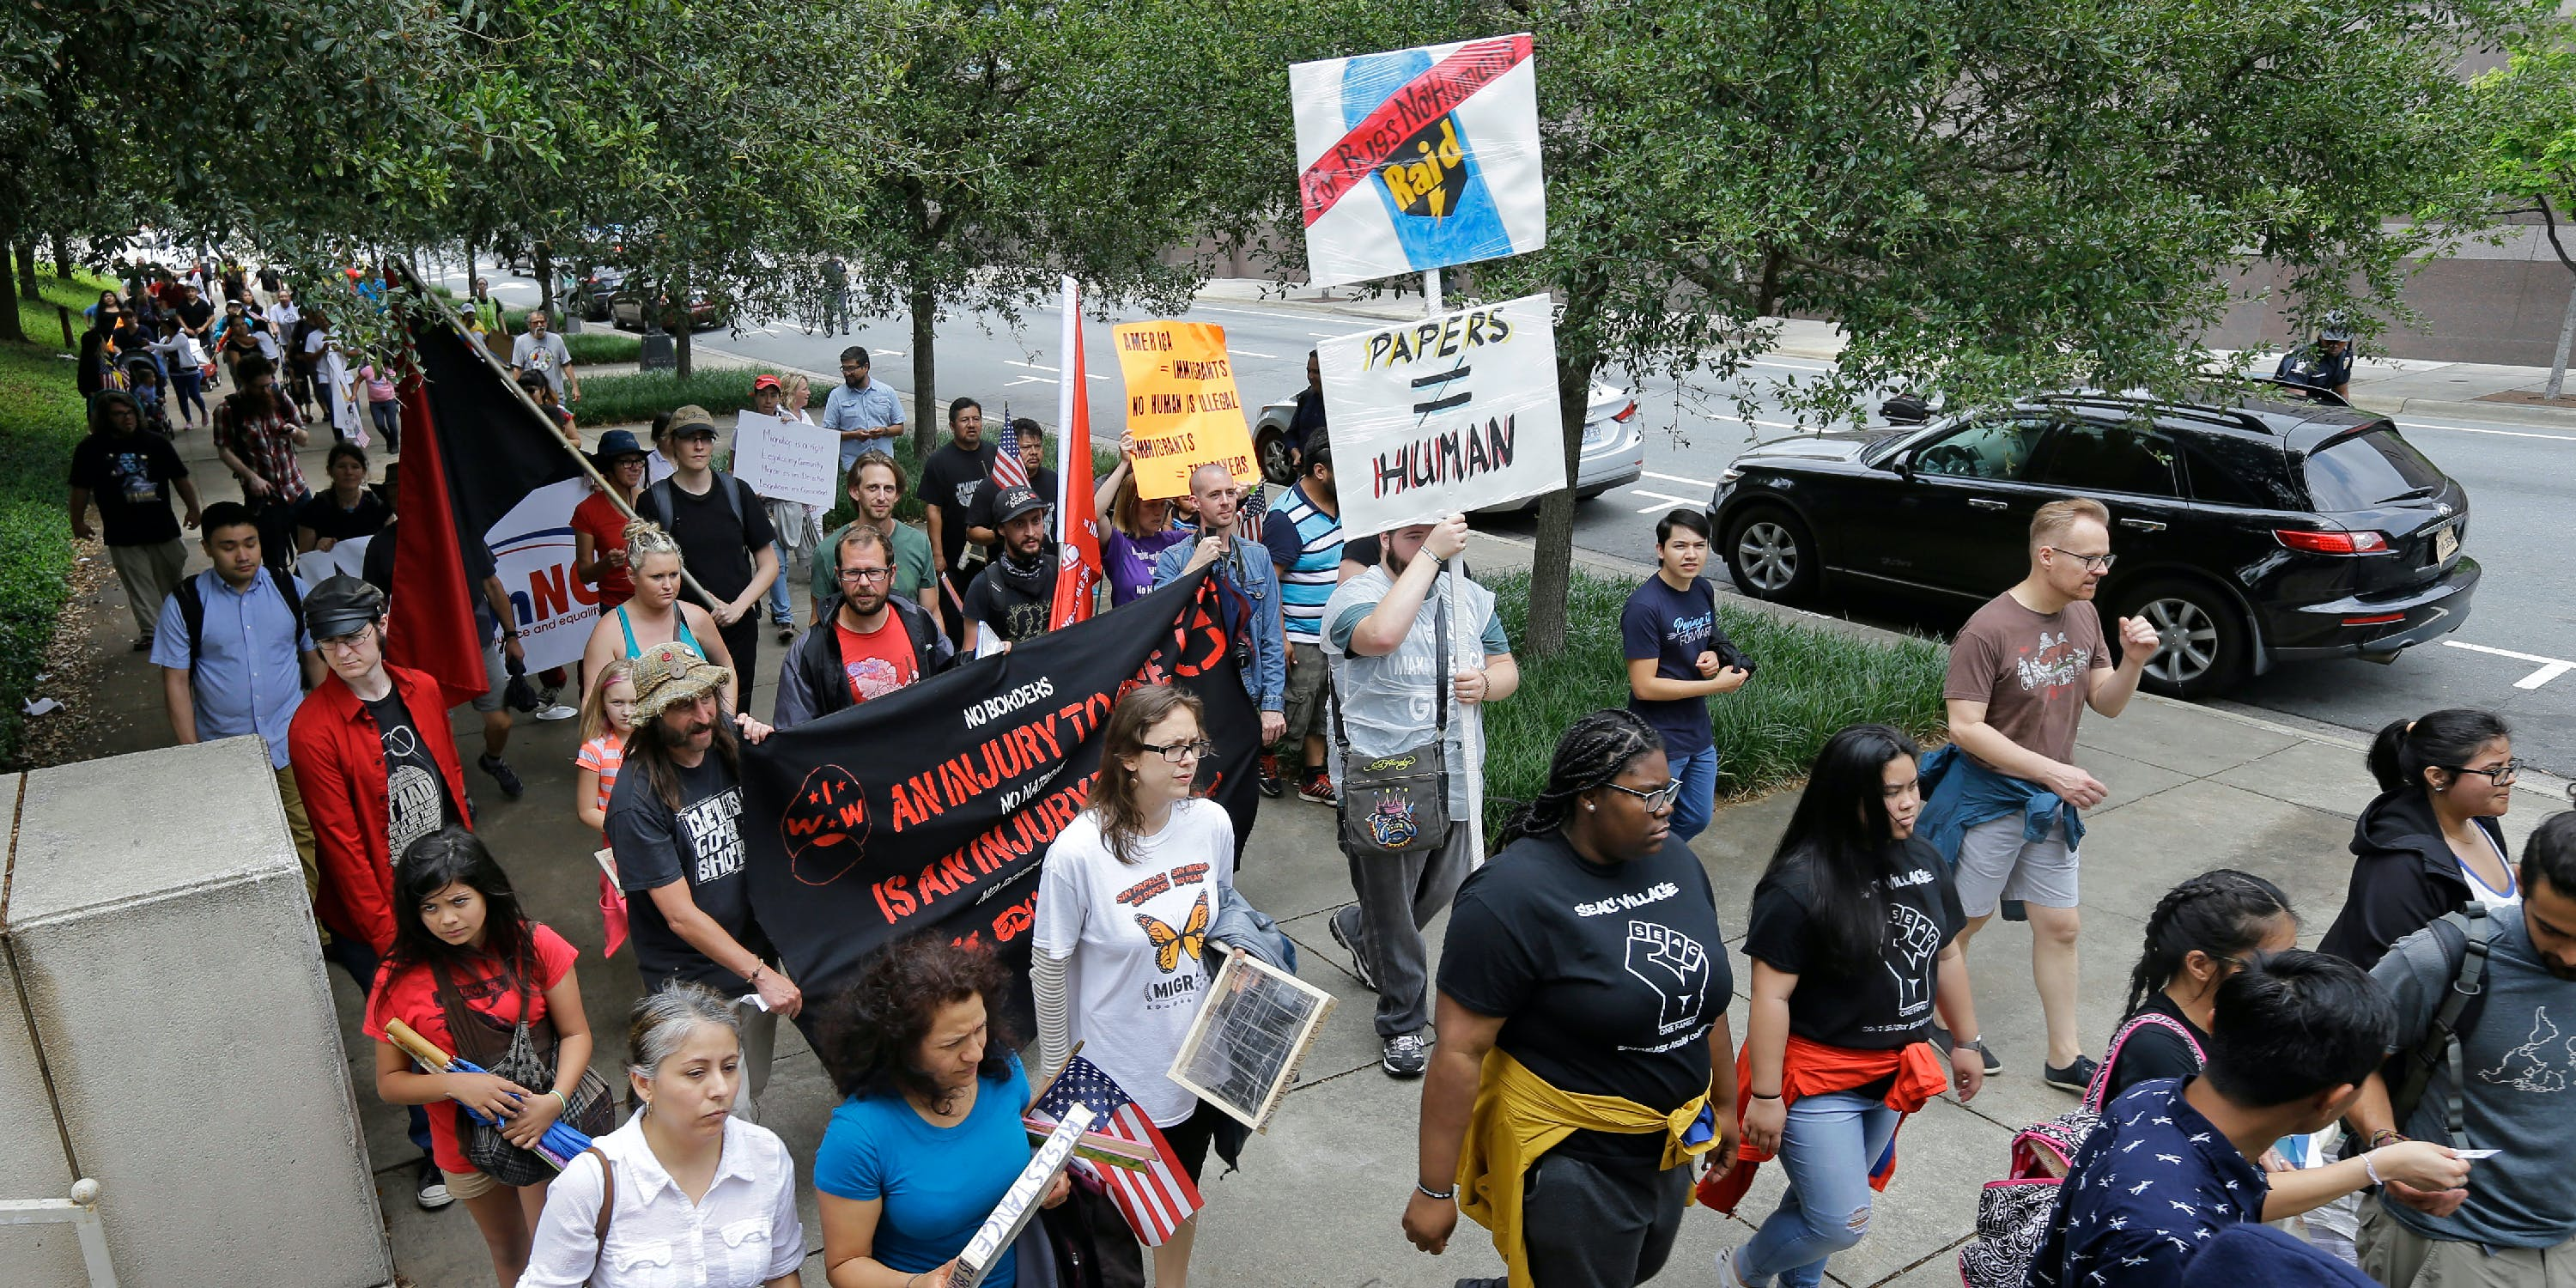 Protesters march during a rally in support of undocumented immigrants in Charlotte, N.C., Monday, May 1, 2017. (AP Photo/Chuck Burton)